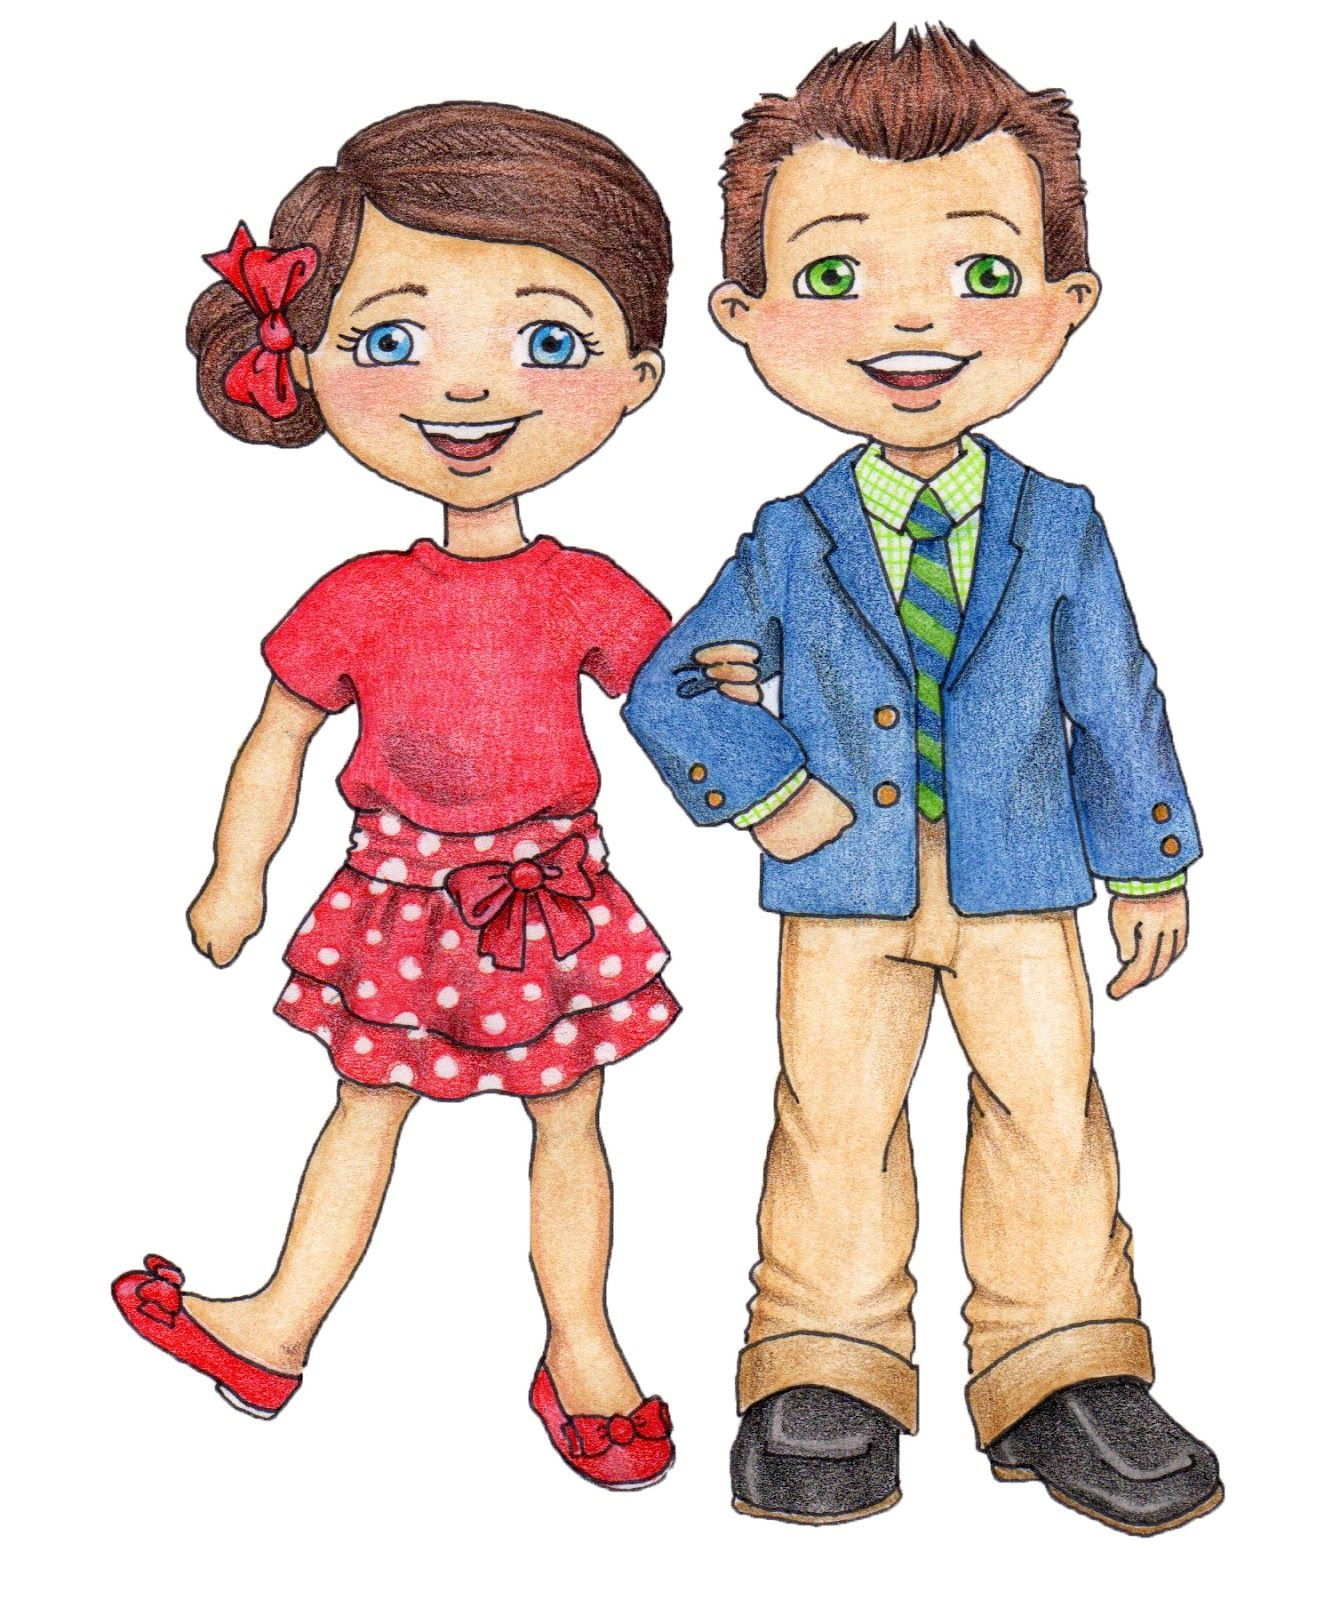 Clip art susan fitch. Free lds primary boy and girl color clipart